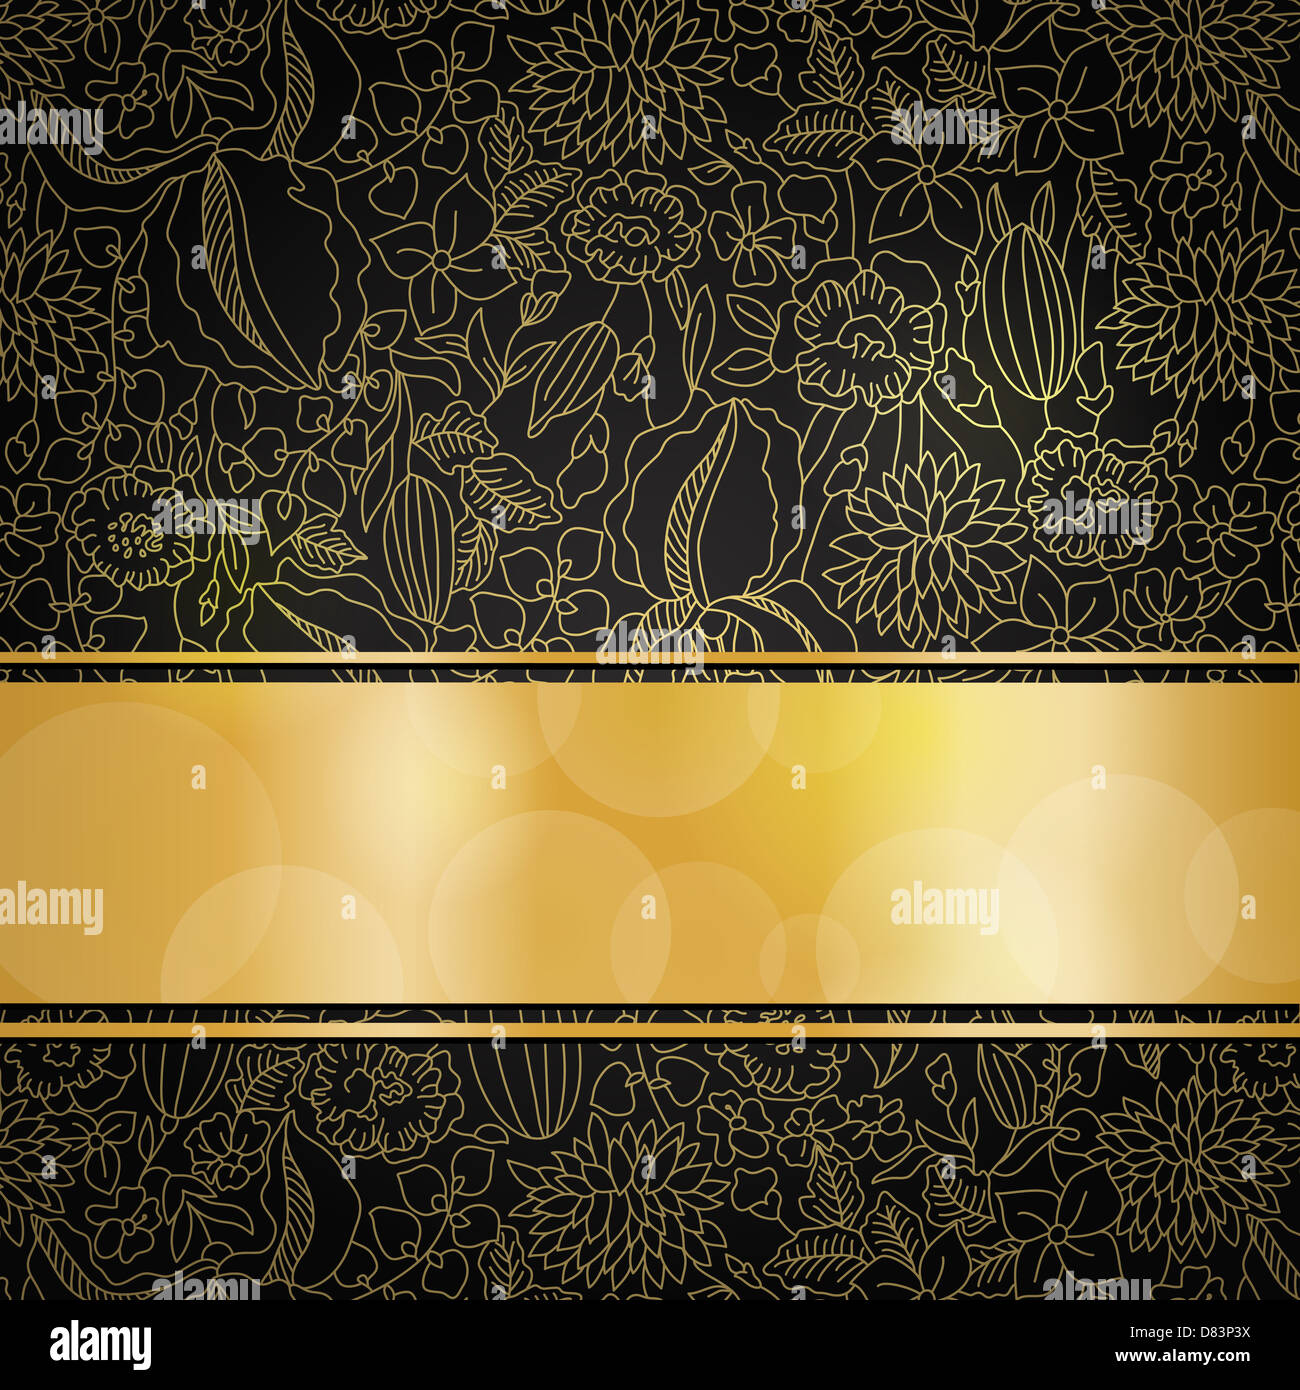 gold floral pattern on black background with golden ribbon and place